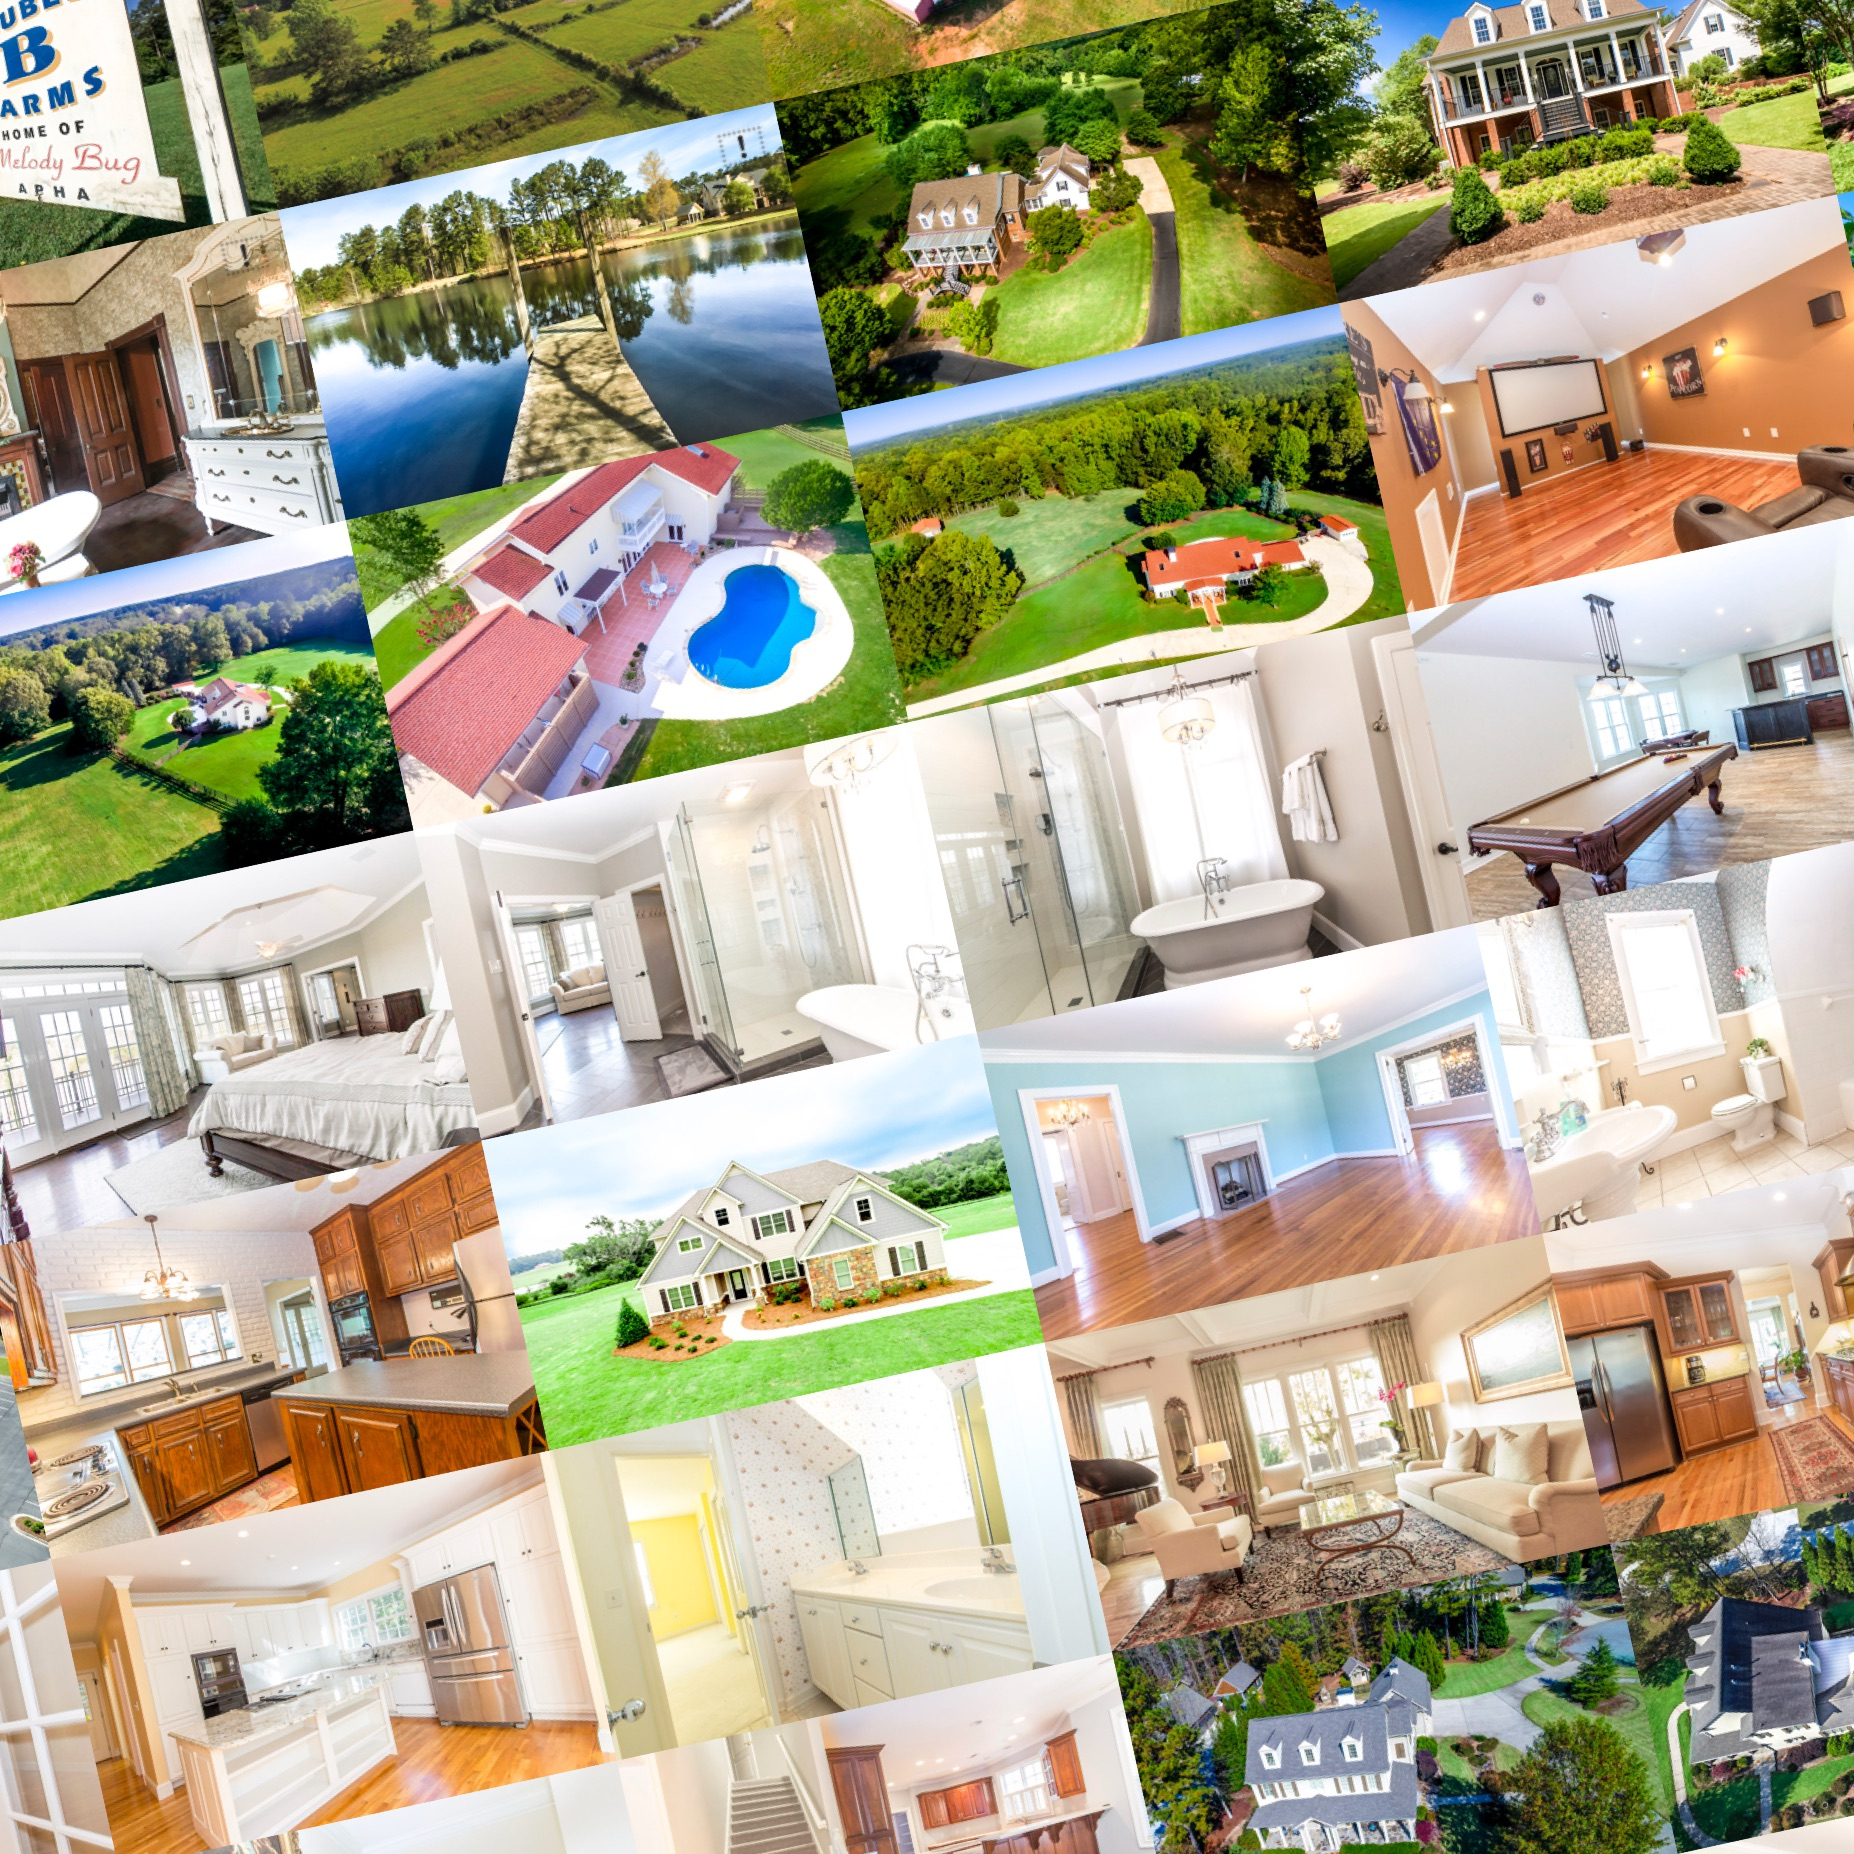 PHOTOS$150 - Aerial and interior. Up to 45 photos optimized for MLS & print. Next day delivery. Wide lenses used to get more of the room into the shot. Listings over 5000 sqft add $50.